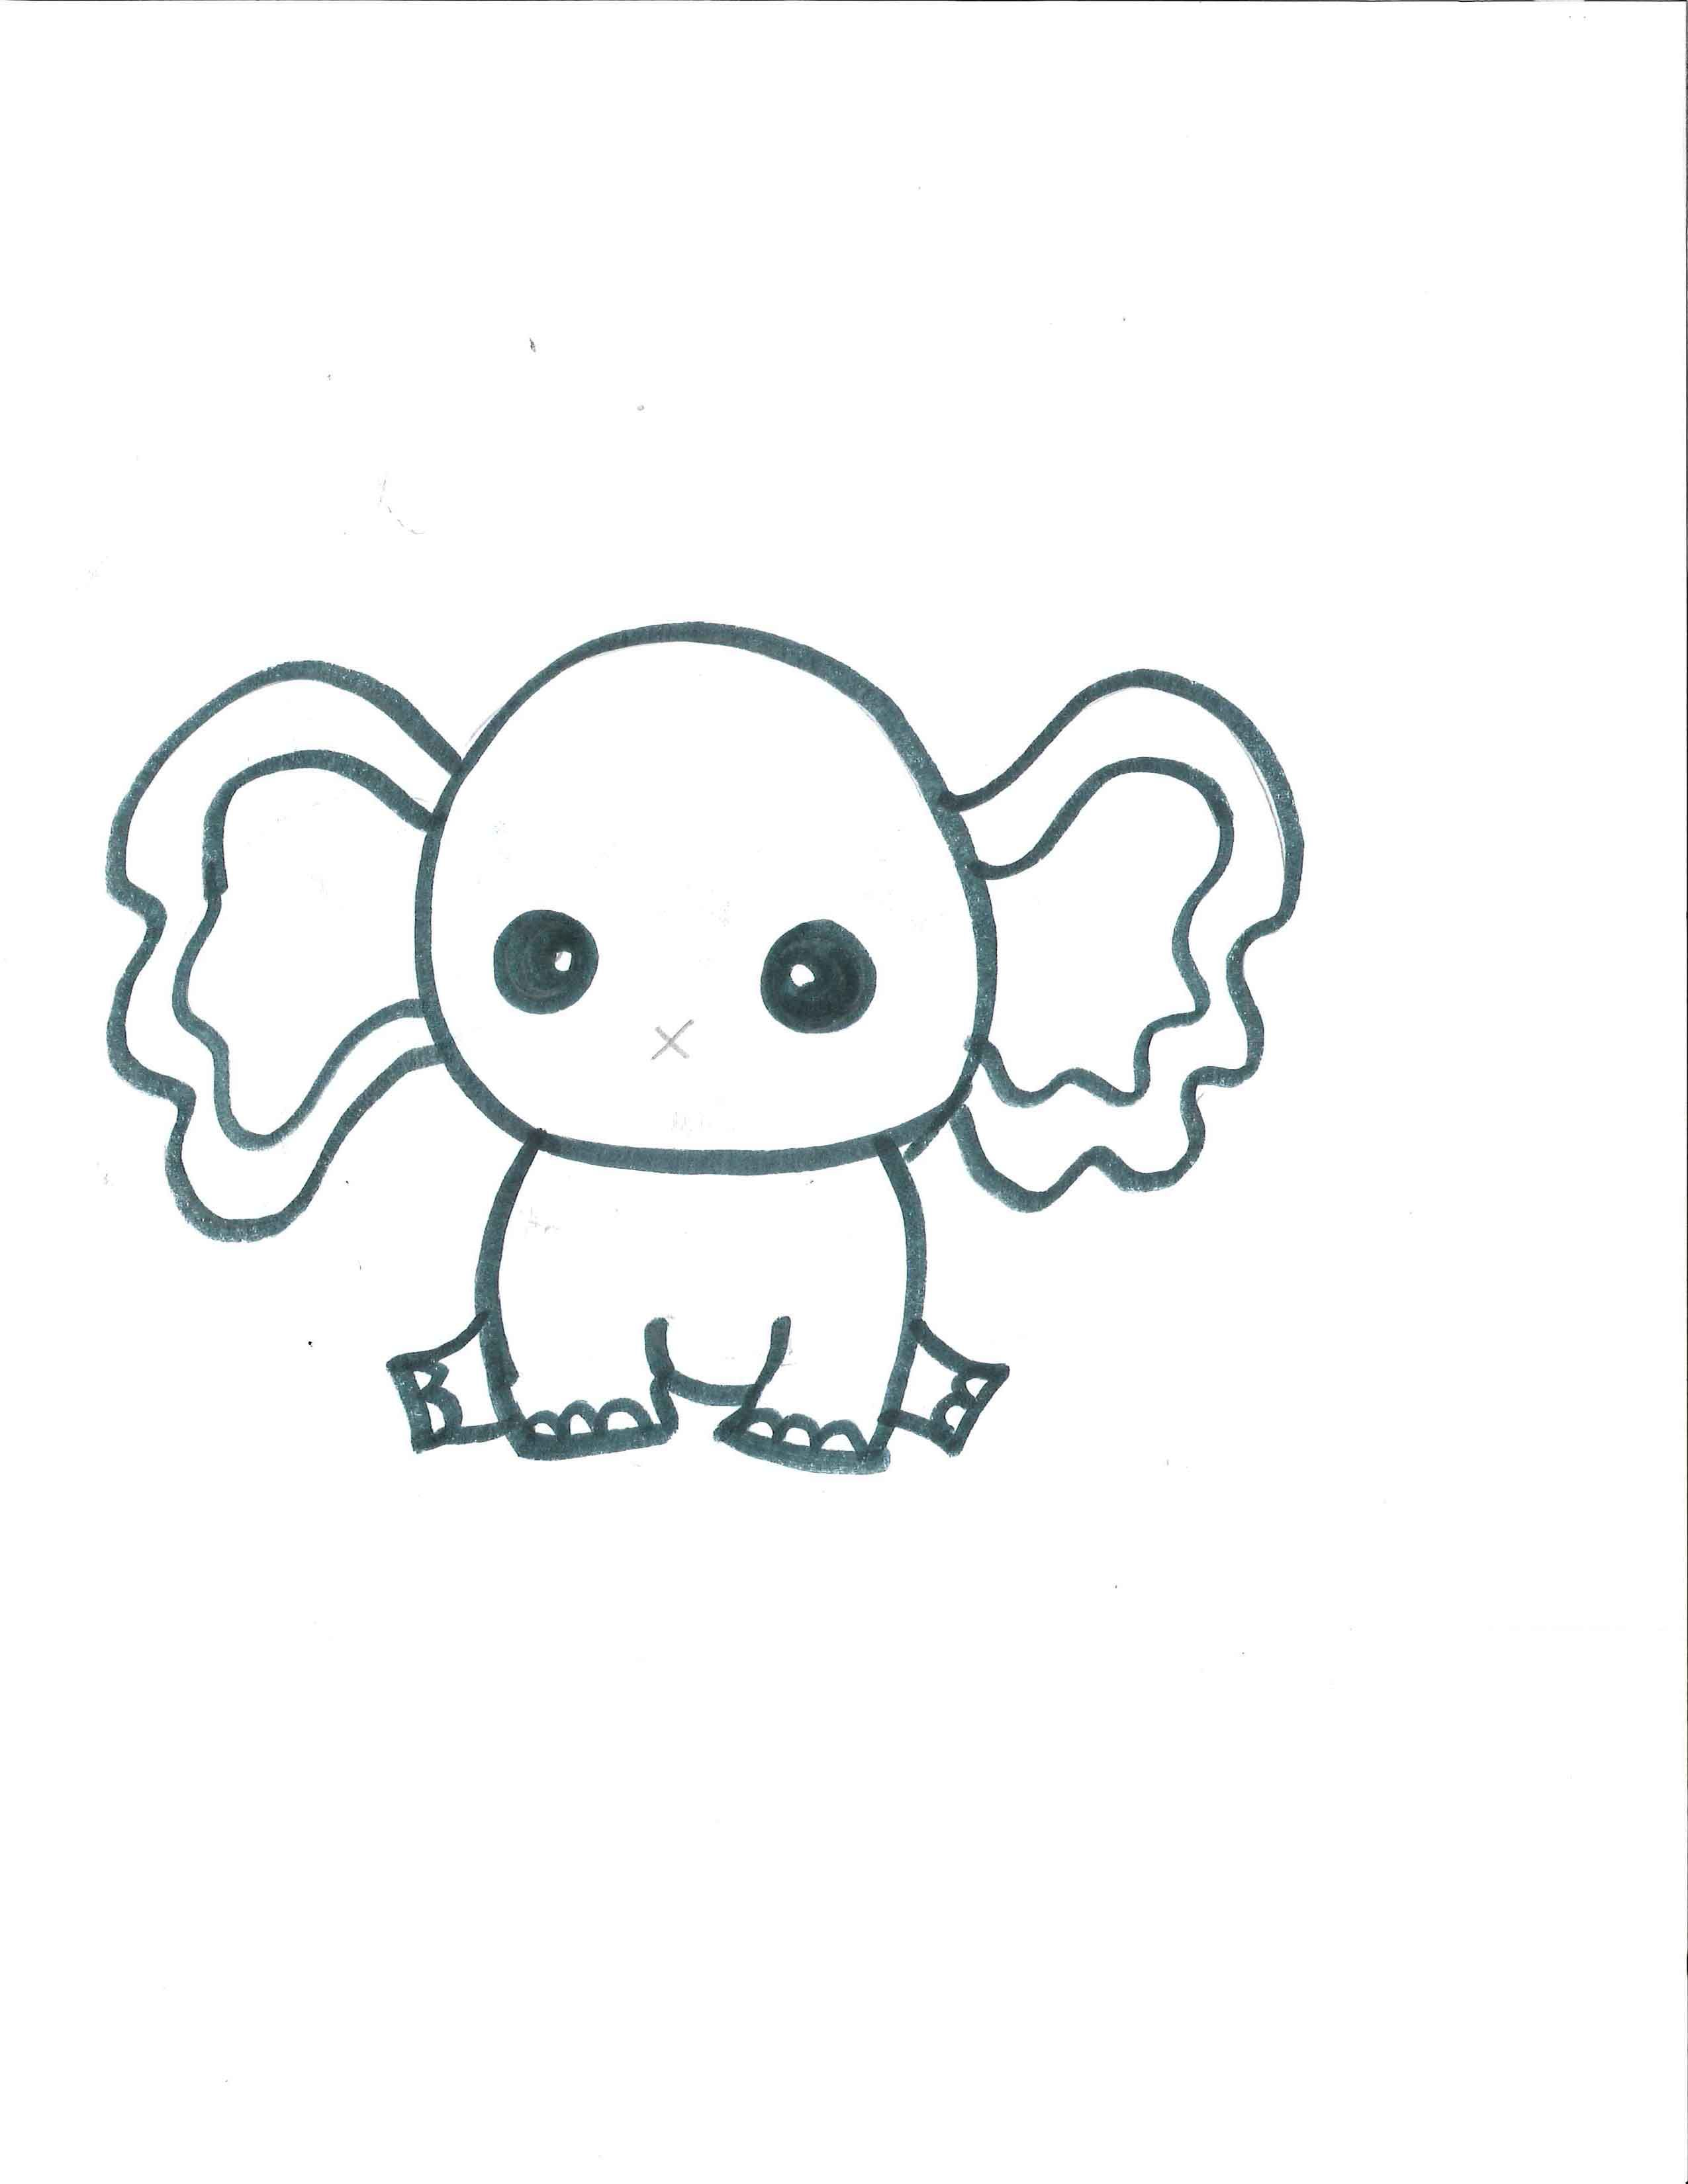 Printable Template For The Elephant Party Blowers I Used A Hole Punch For The Nose And Then